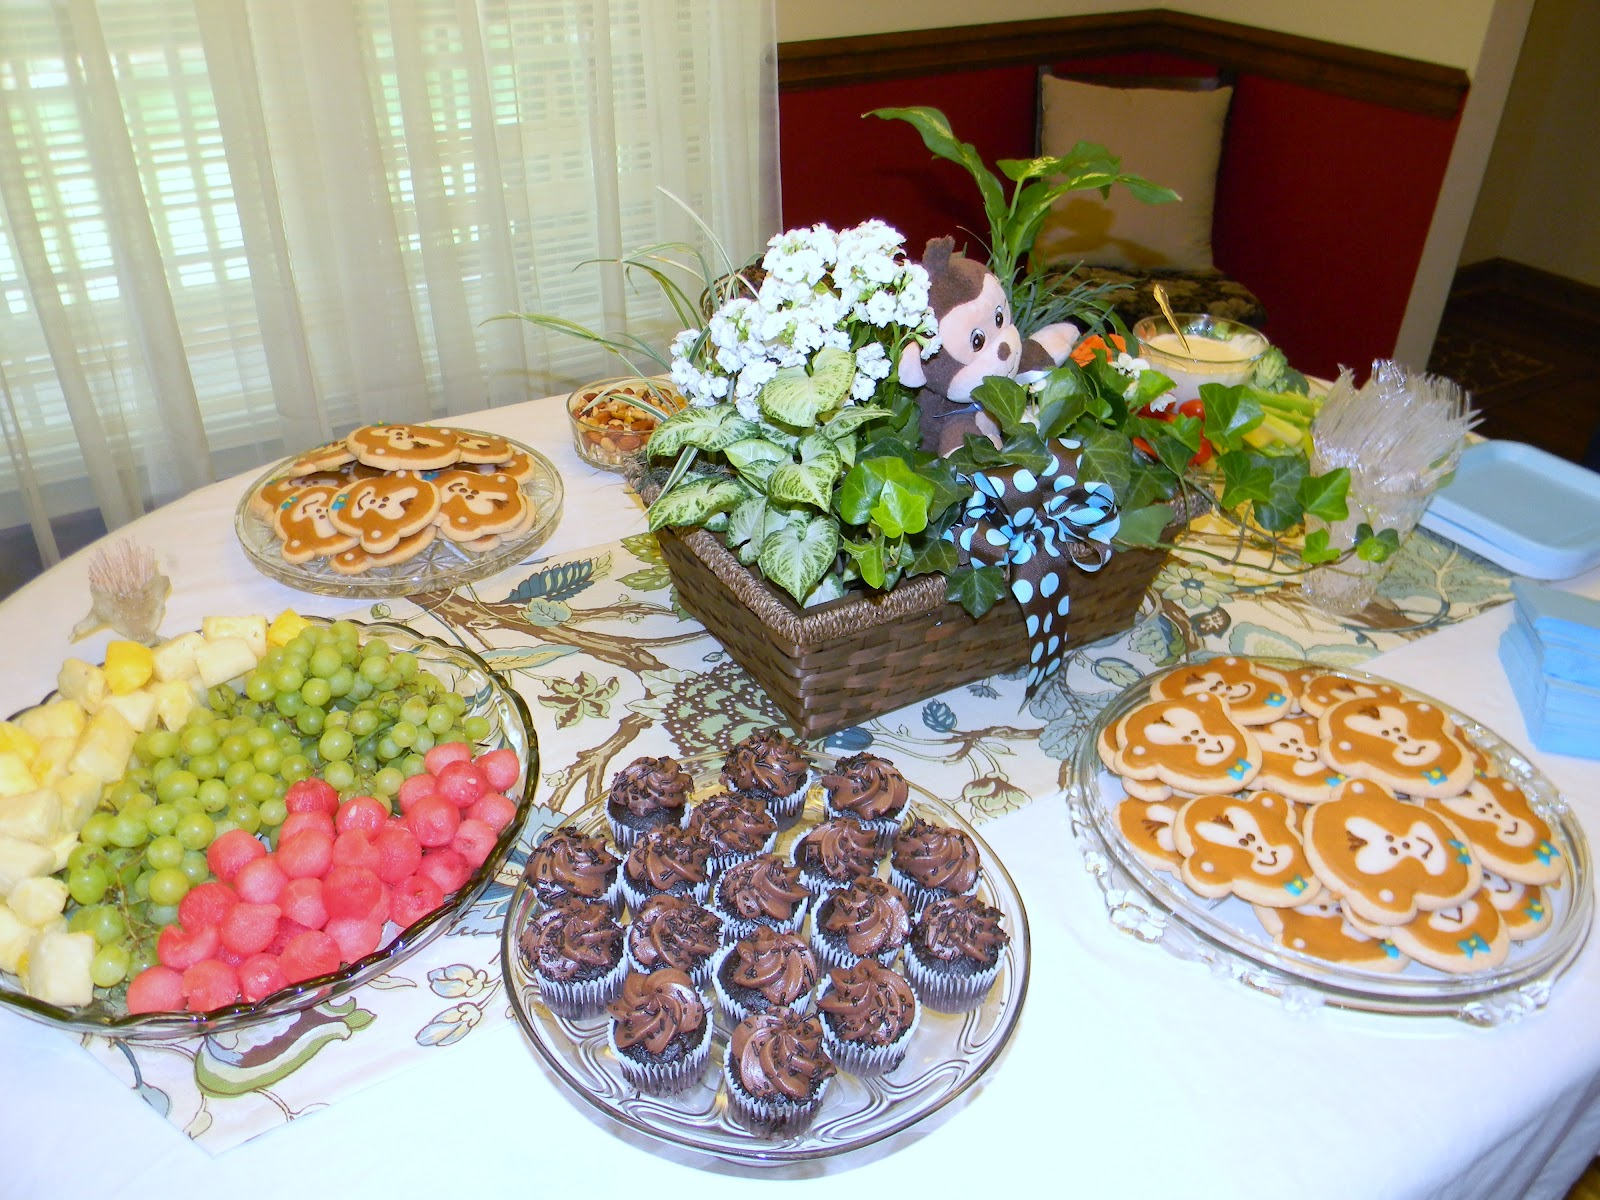 Baby Shower Food Ideas: Baby Shower Finger Food Ideas On A ...